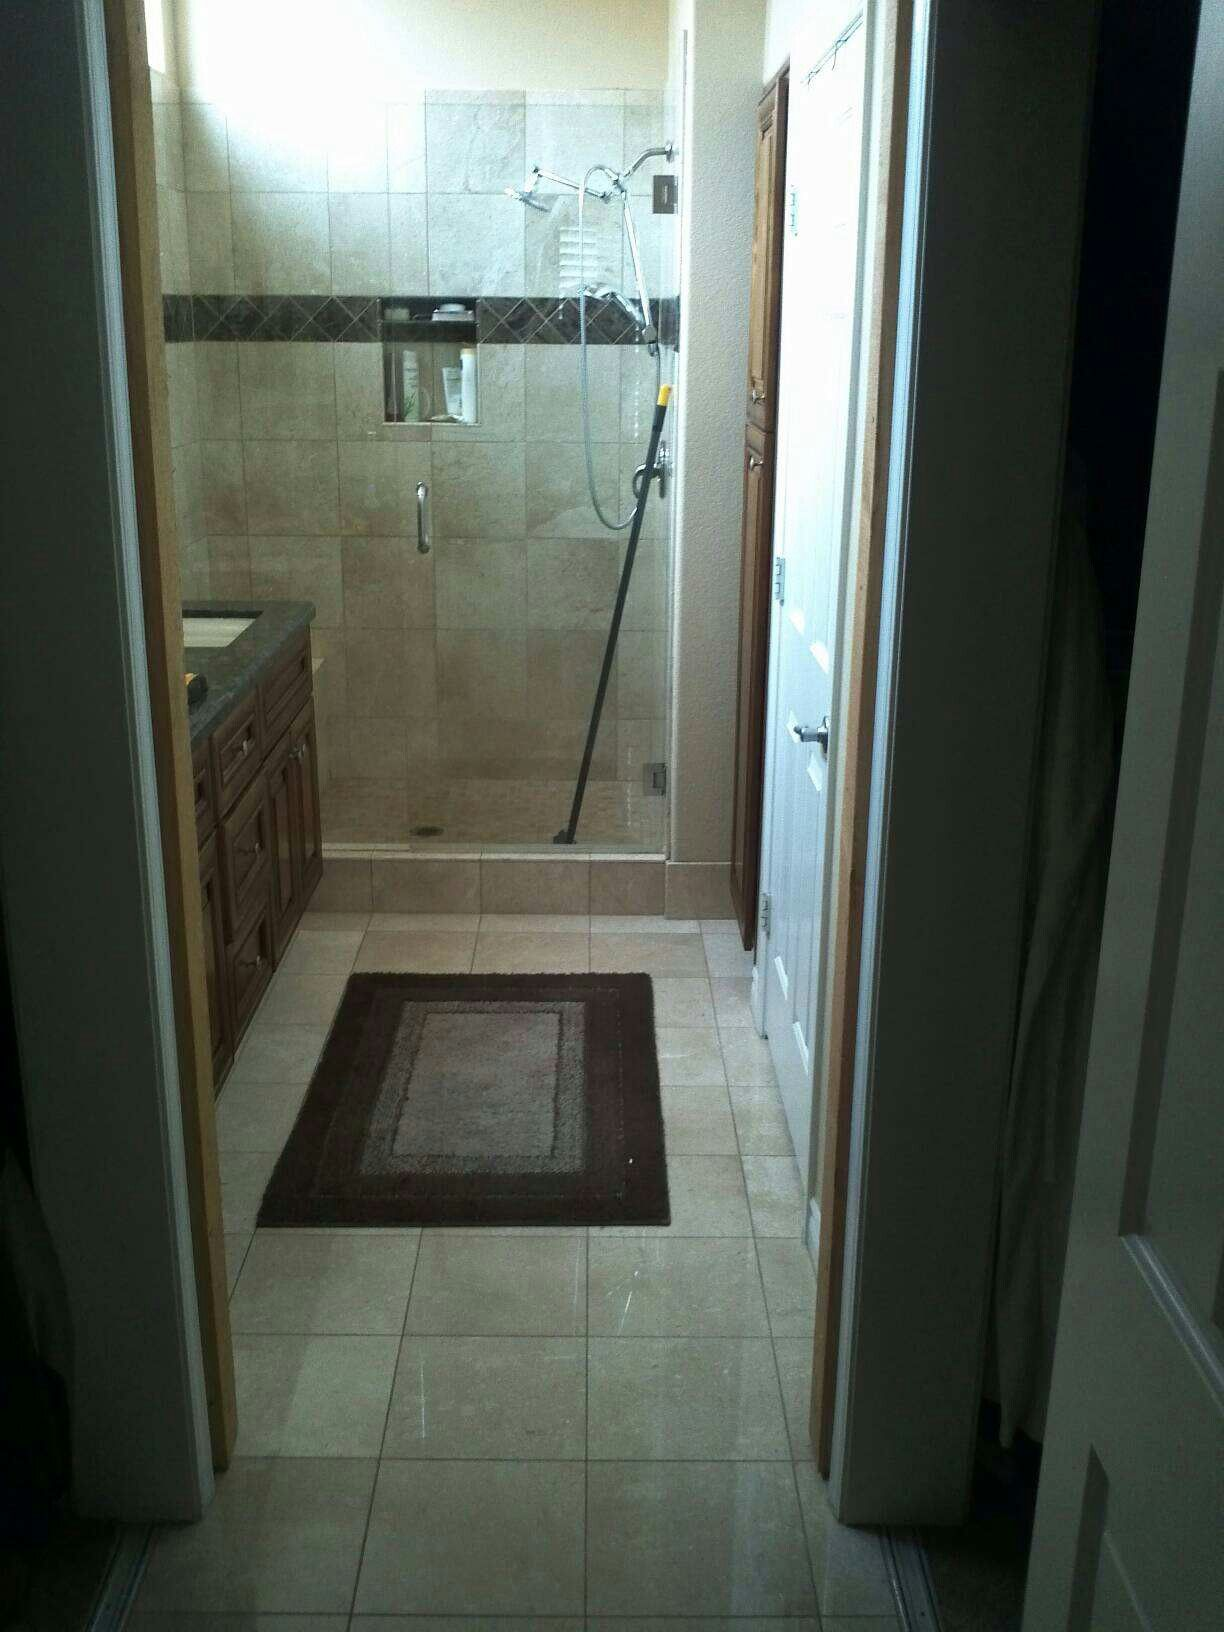 Steve S Bathroom Remodeling Contractor Georgetown Texas Round